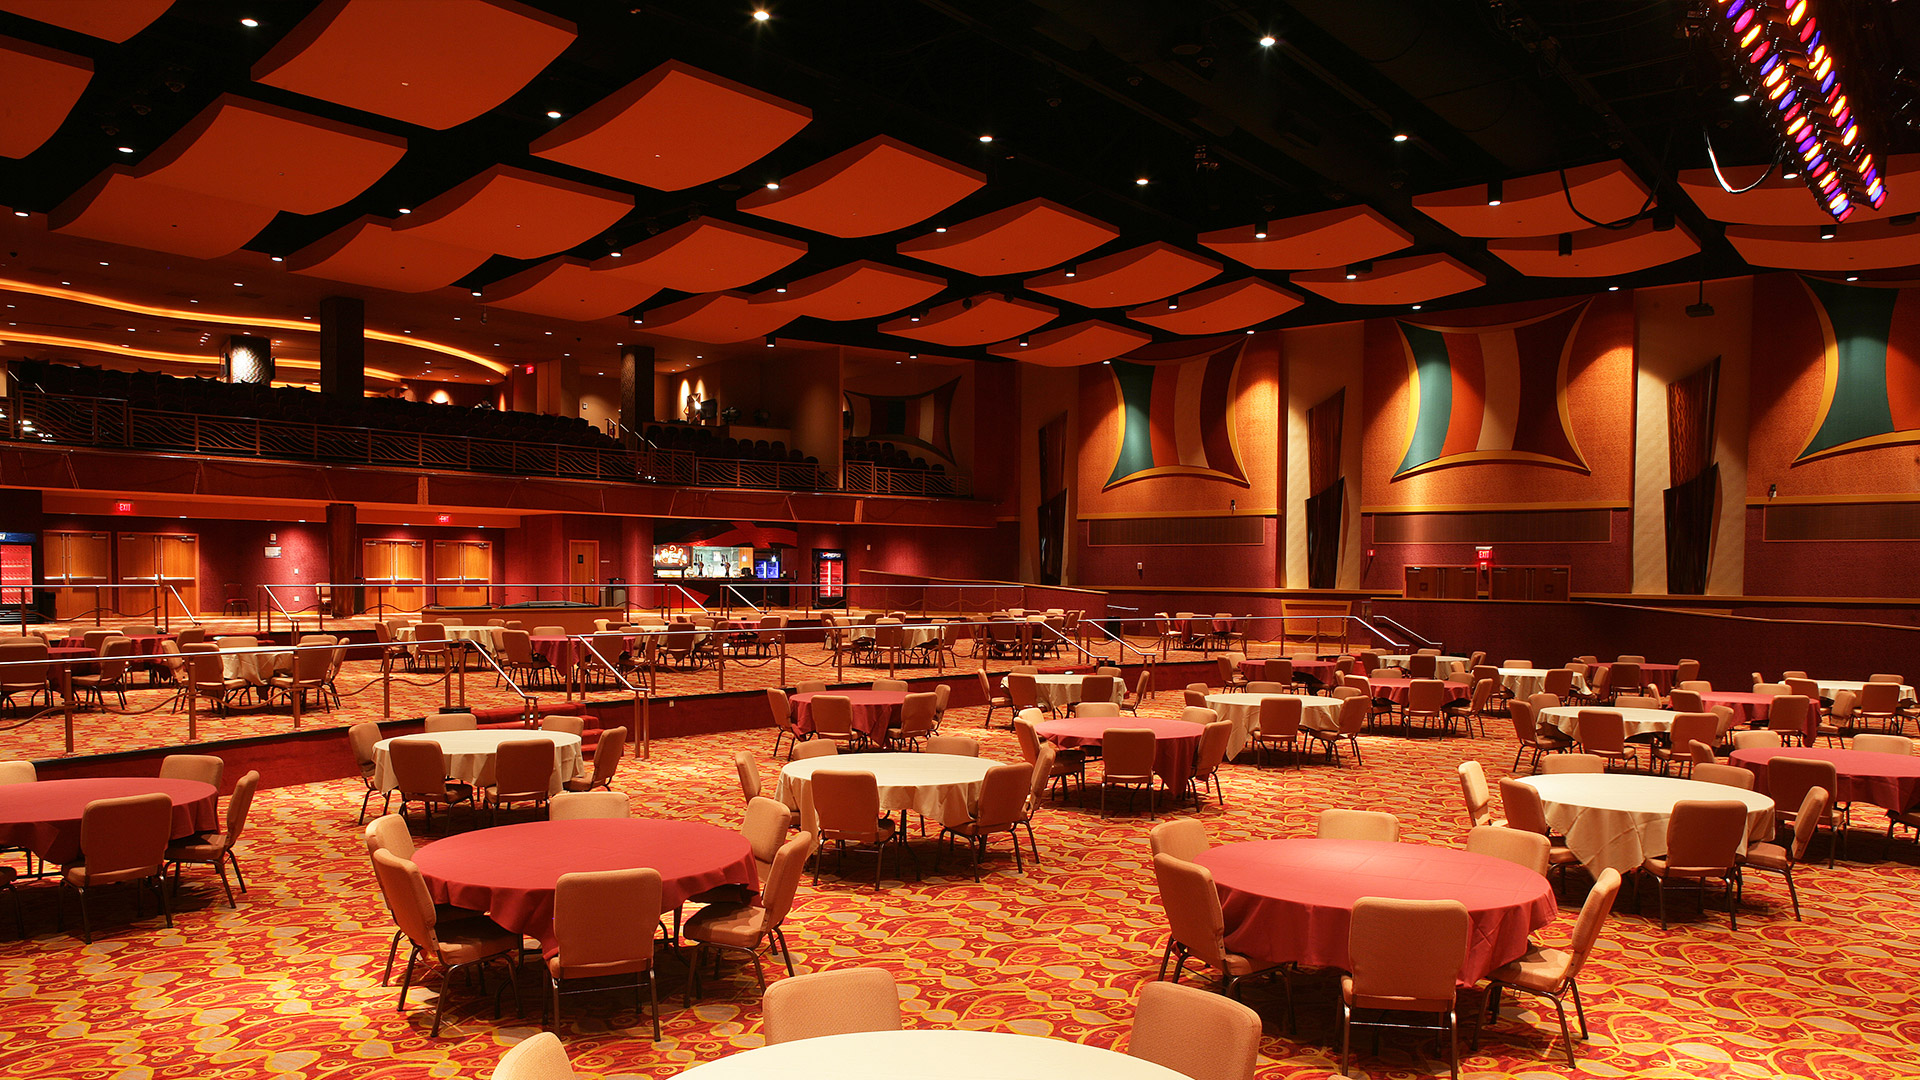 Showplace Theatre Riverwind